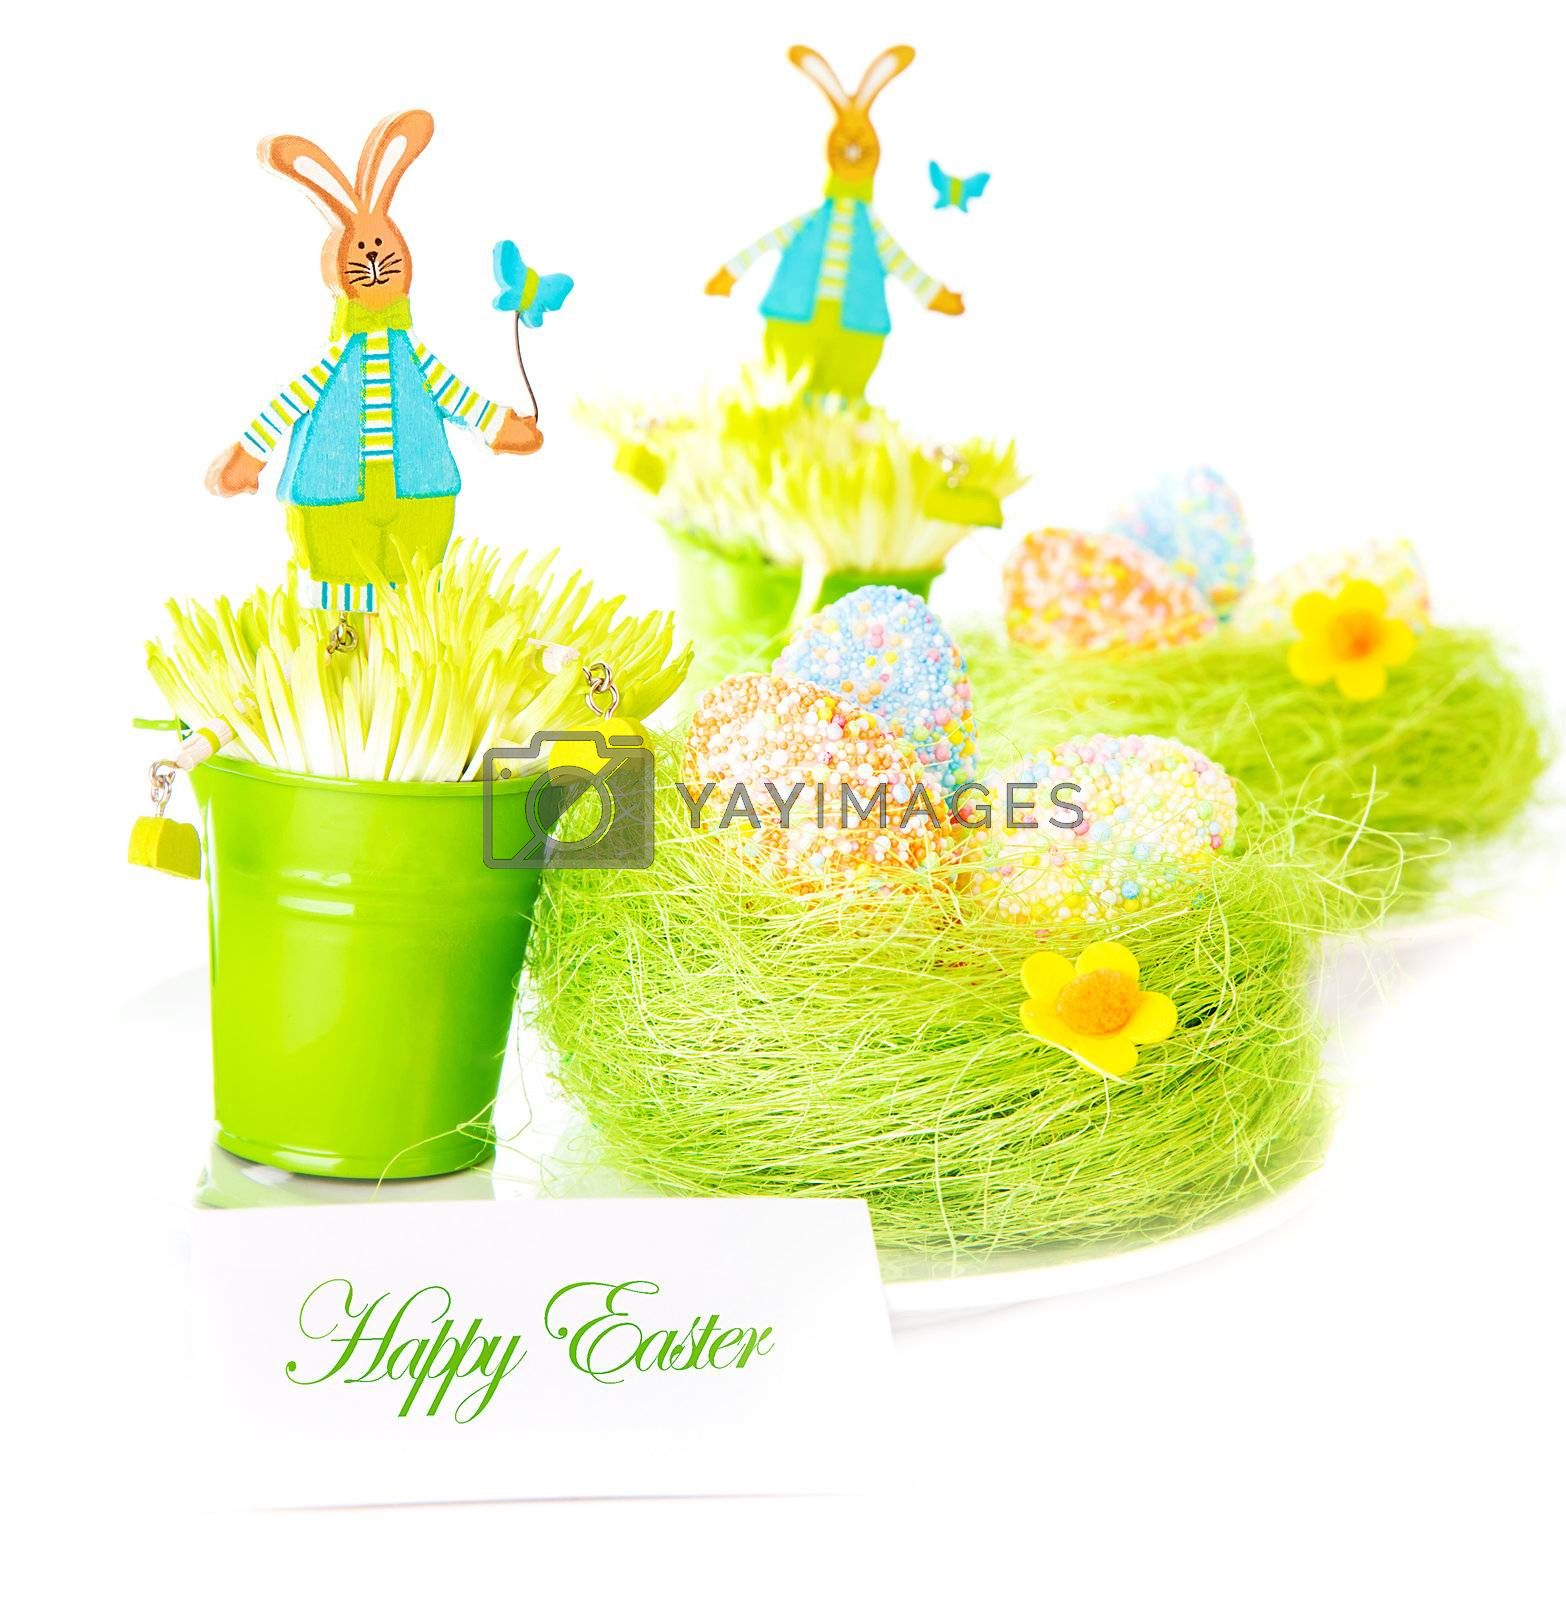 Beautiful colorful chicken eggs in the nest decorated with flowers and pretty rabbit toys isolated on white background, festive Easter postcard